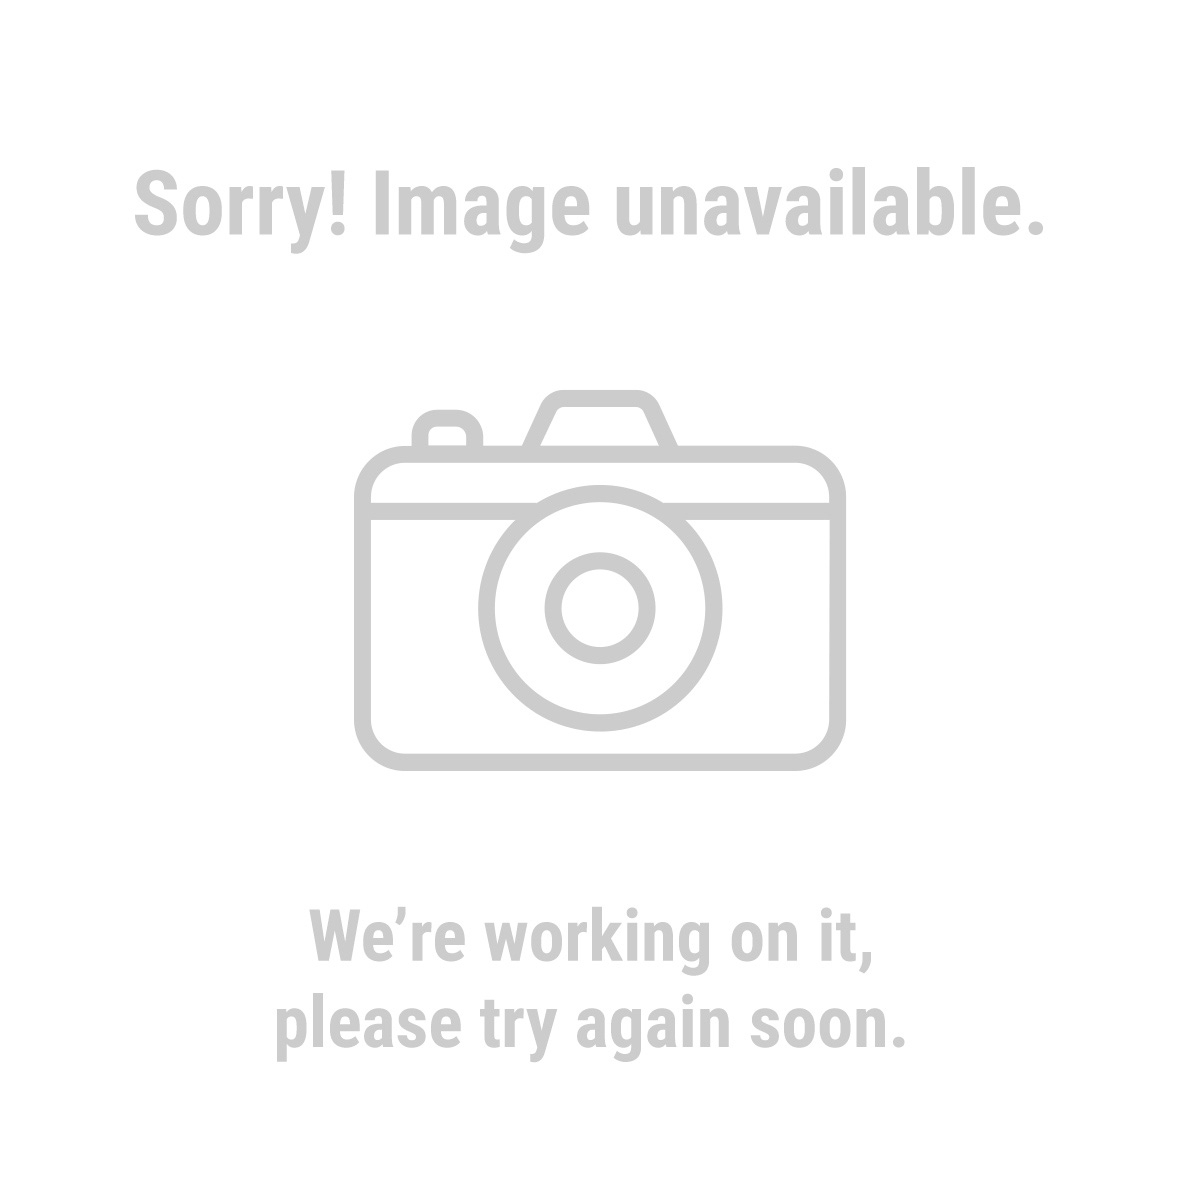 Pittsburgh® 69376 4 Piece Tongue and Groove Joint Pliers Set